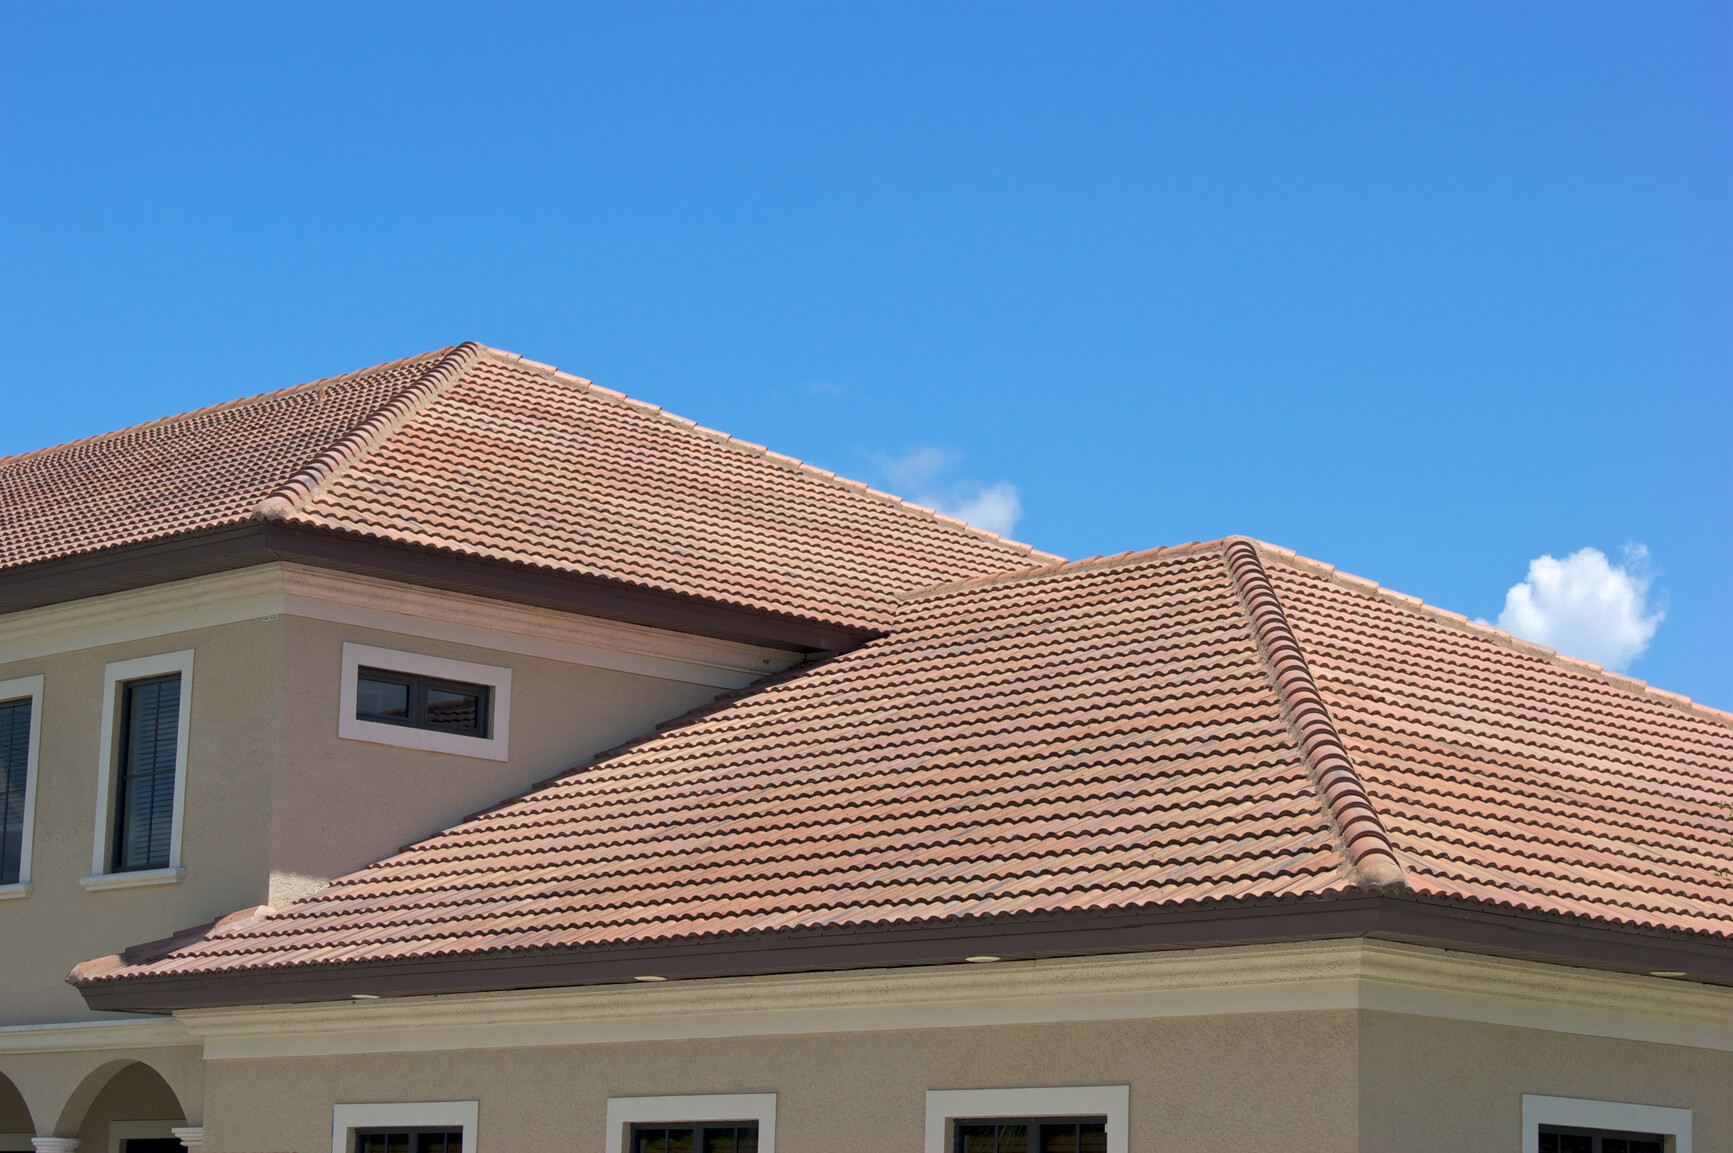 Roofing Material: Is a tile roof right for my house?